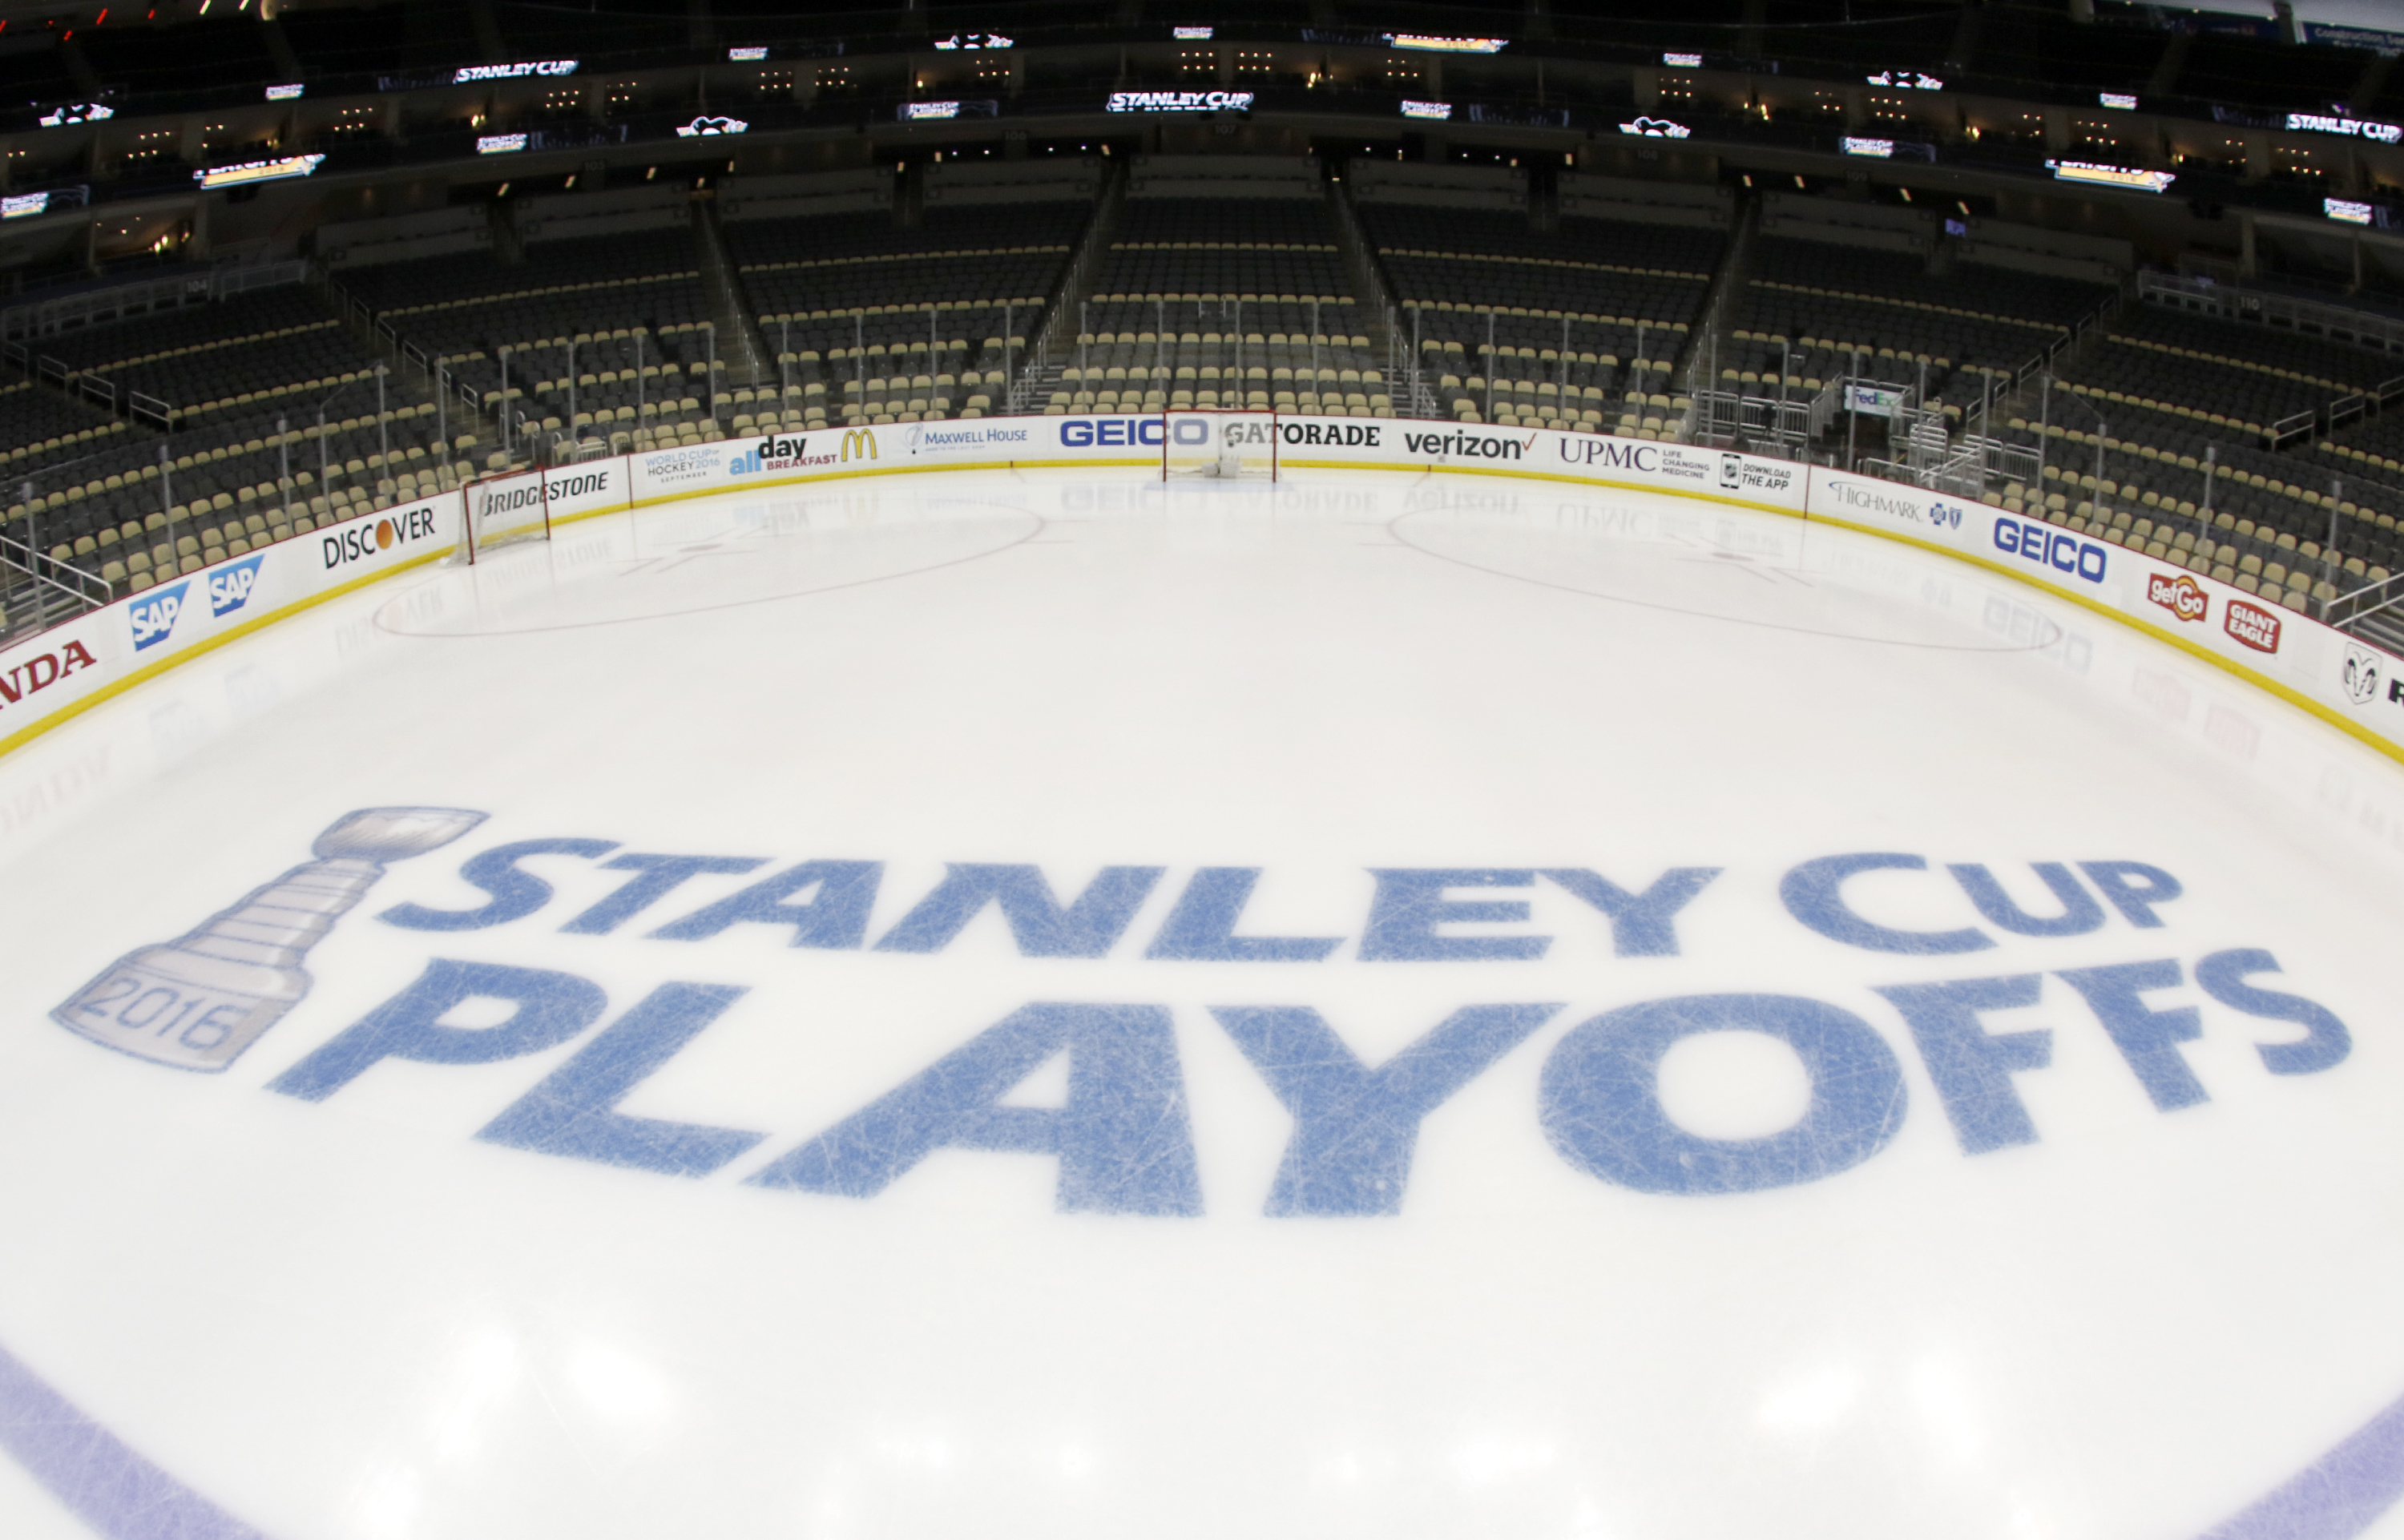 NHL playoff format 2017: How does the new system work?